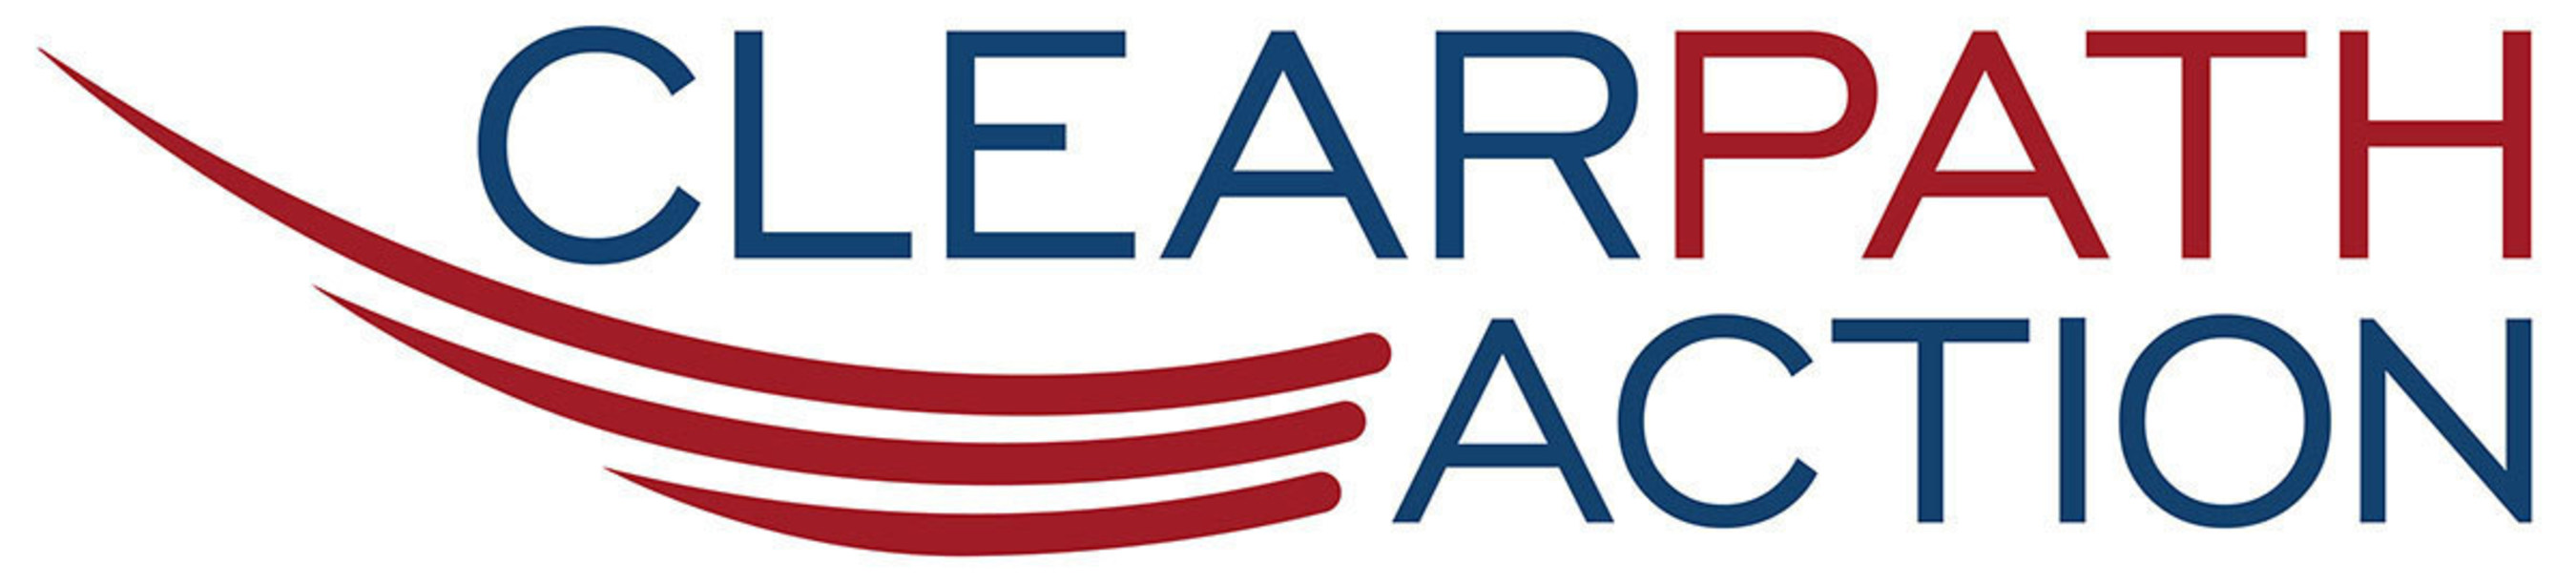 www.clearpathaction.org (PRNewsFoto/ClearPath Action)